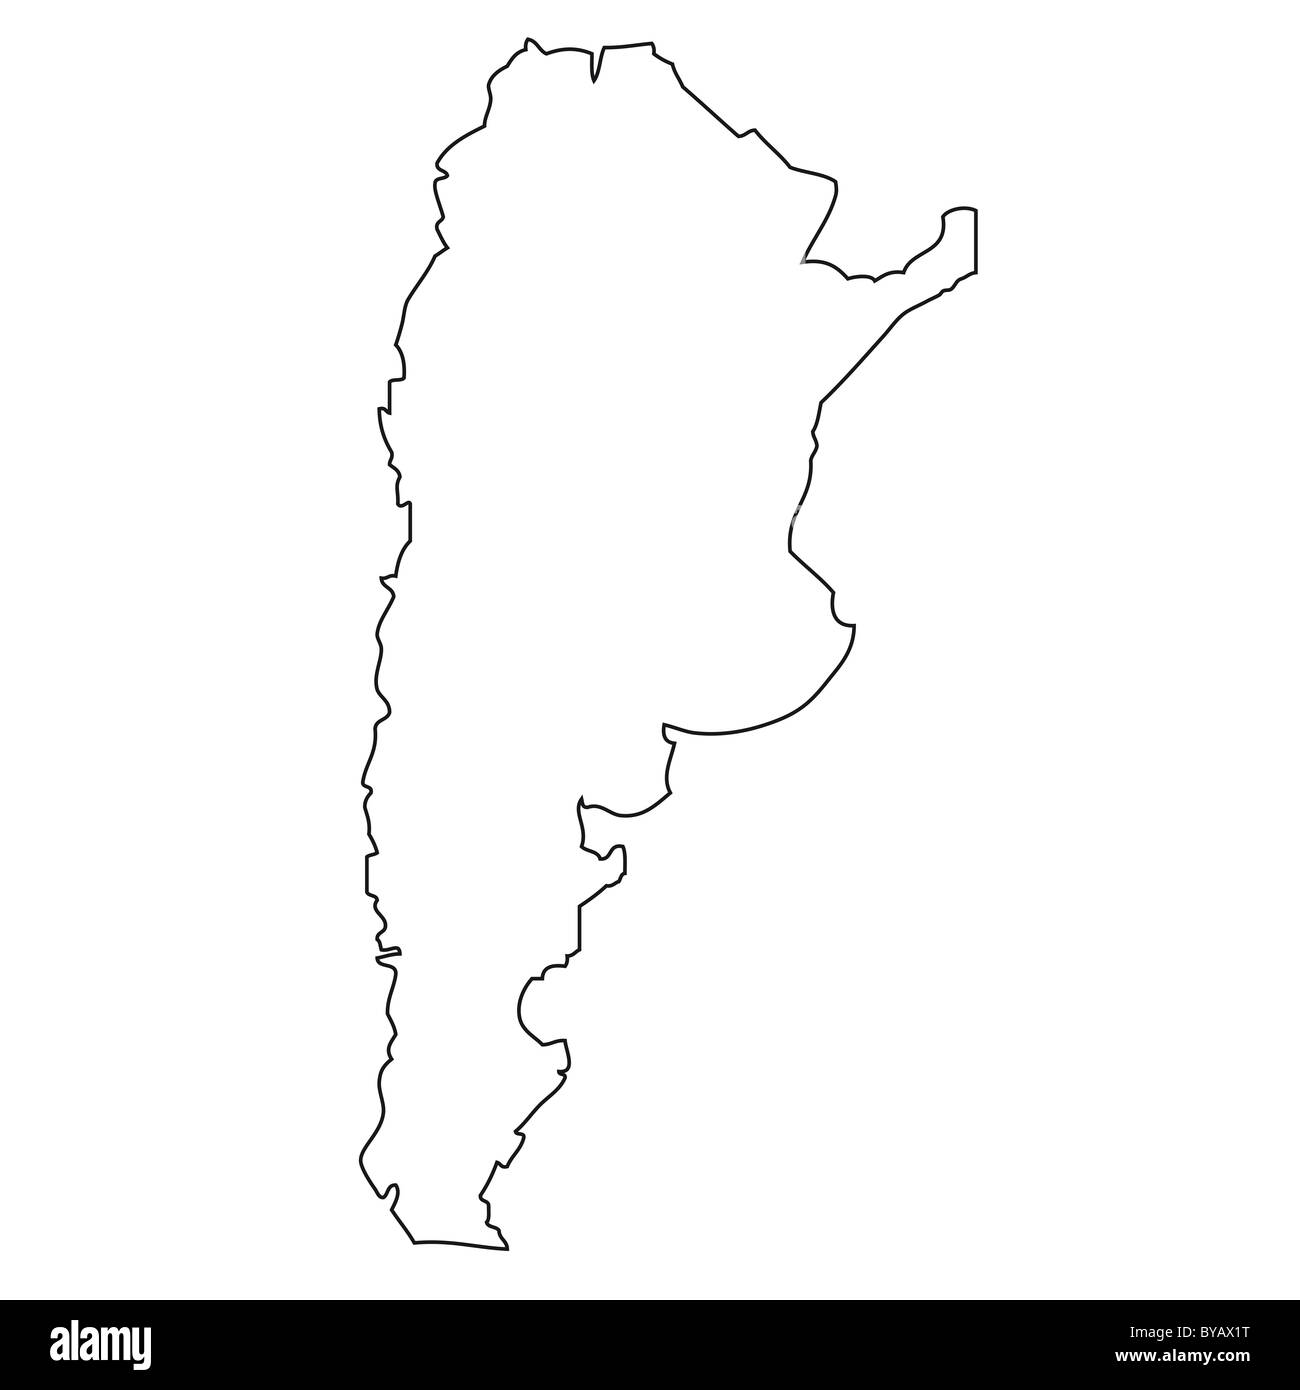 Outline Map Of Argentina Stock Photo Royalty Free Image - Argentina map outline